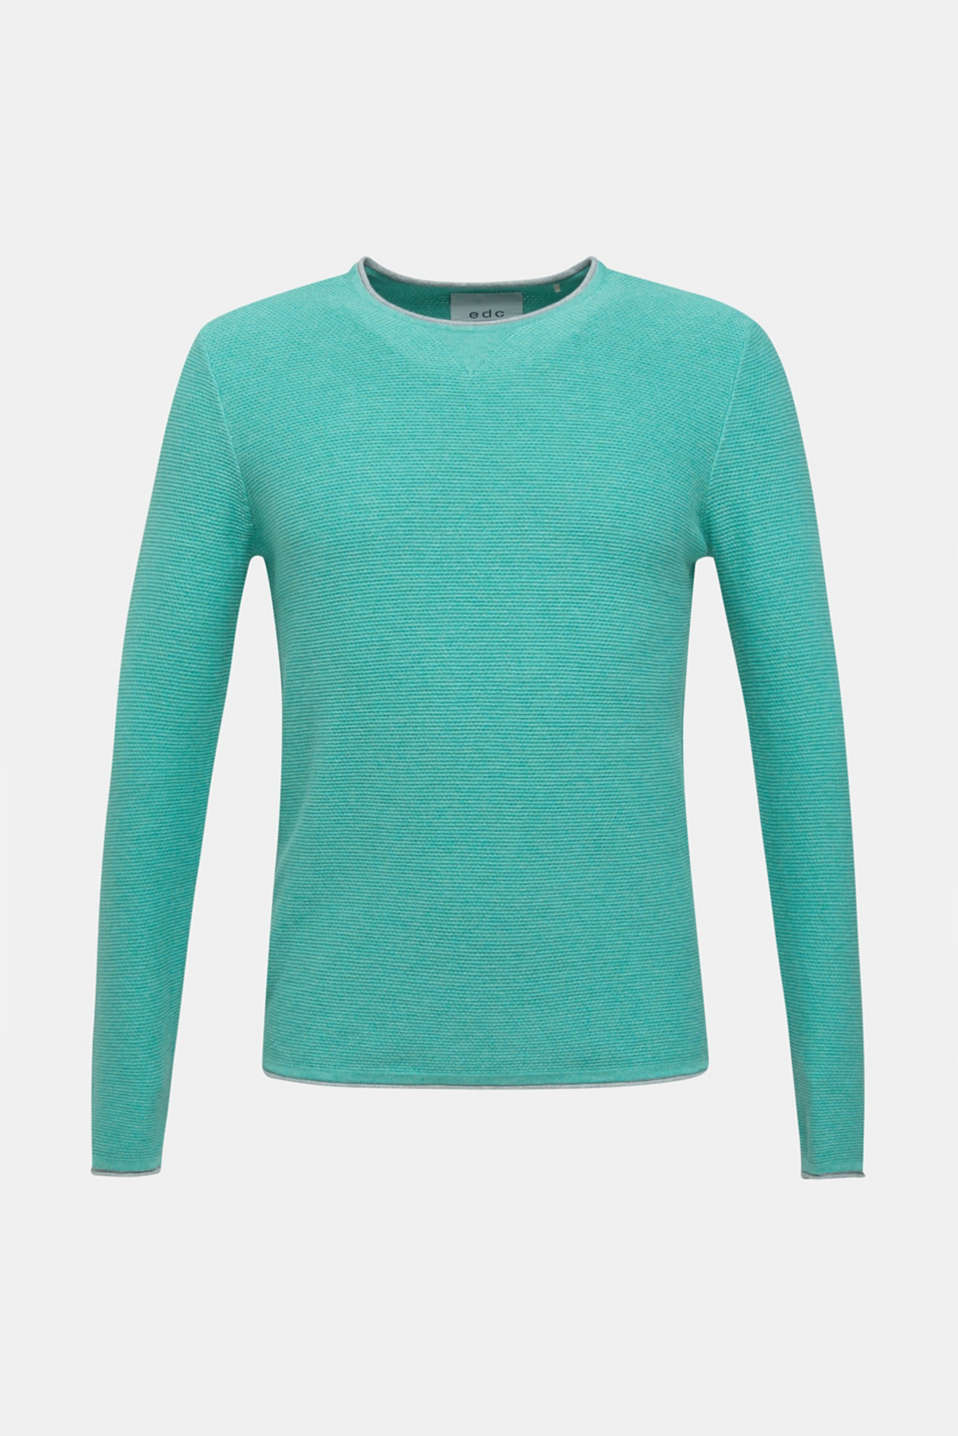 Textured jumper made of 100% cotton, LIGHT AQUA GREEN 5, detail image number 6